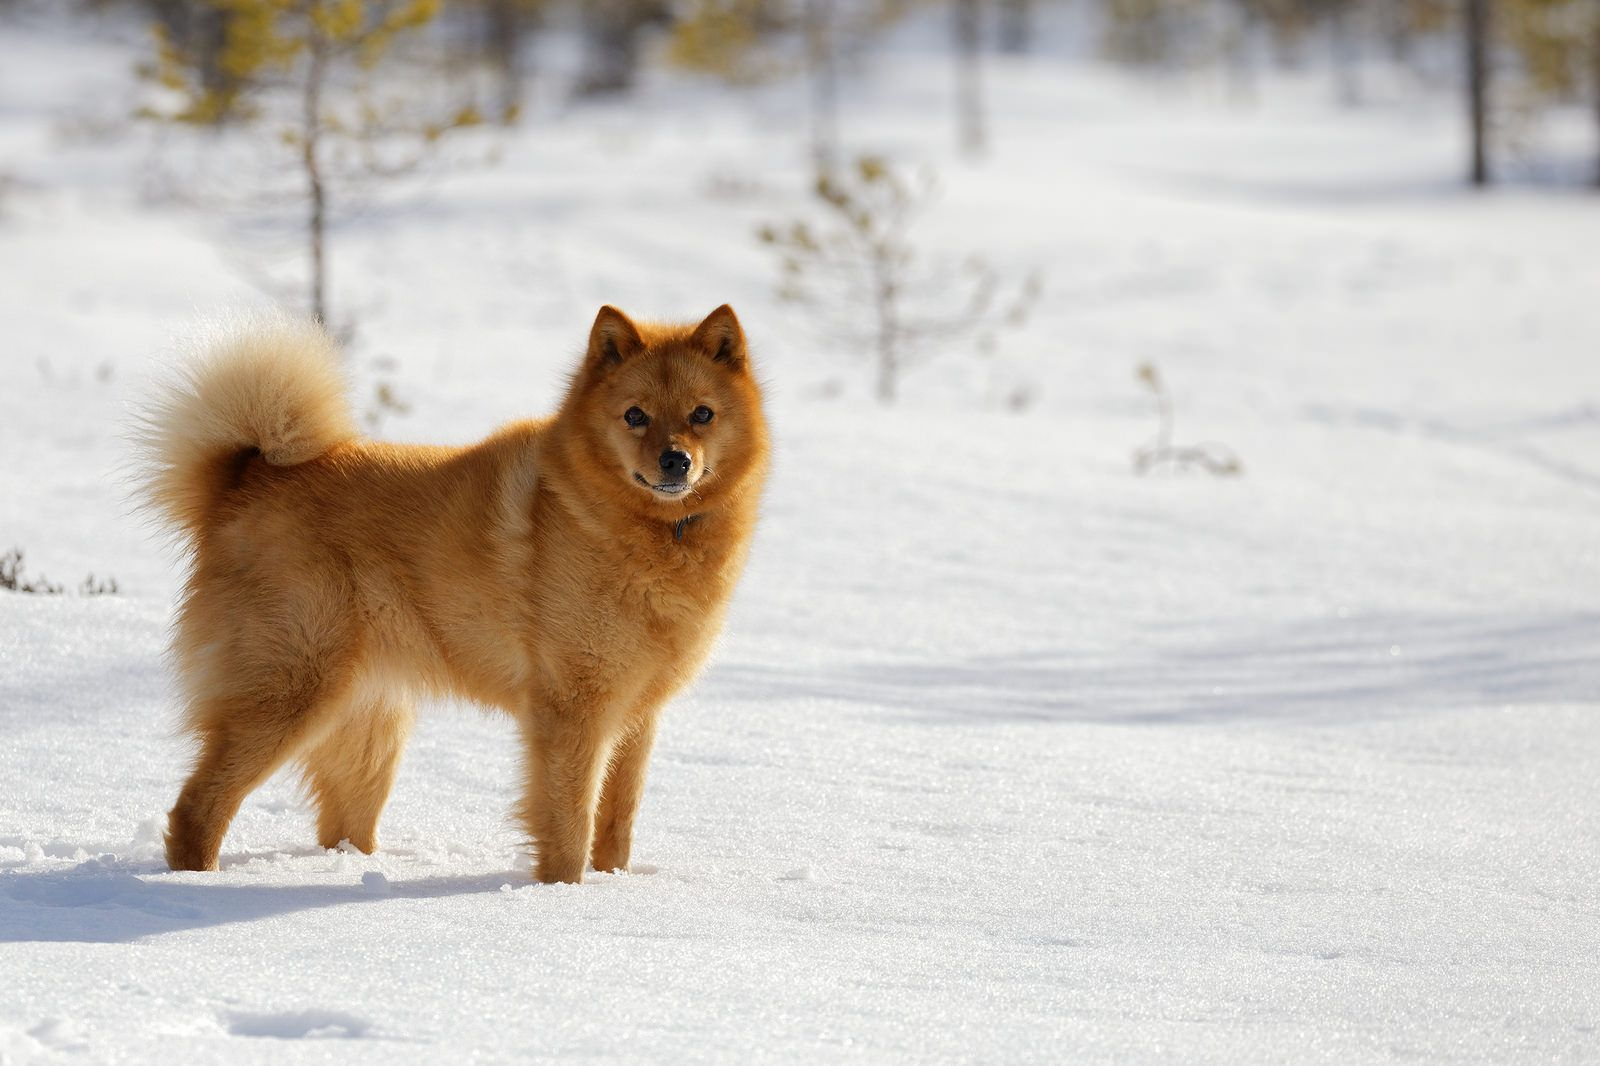 Suomenpystykorva Finnish Spitz Finnish Spitz Dog Breeds Dogs And Puppies